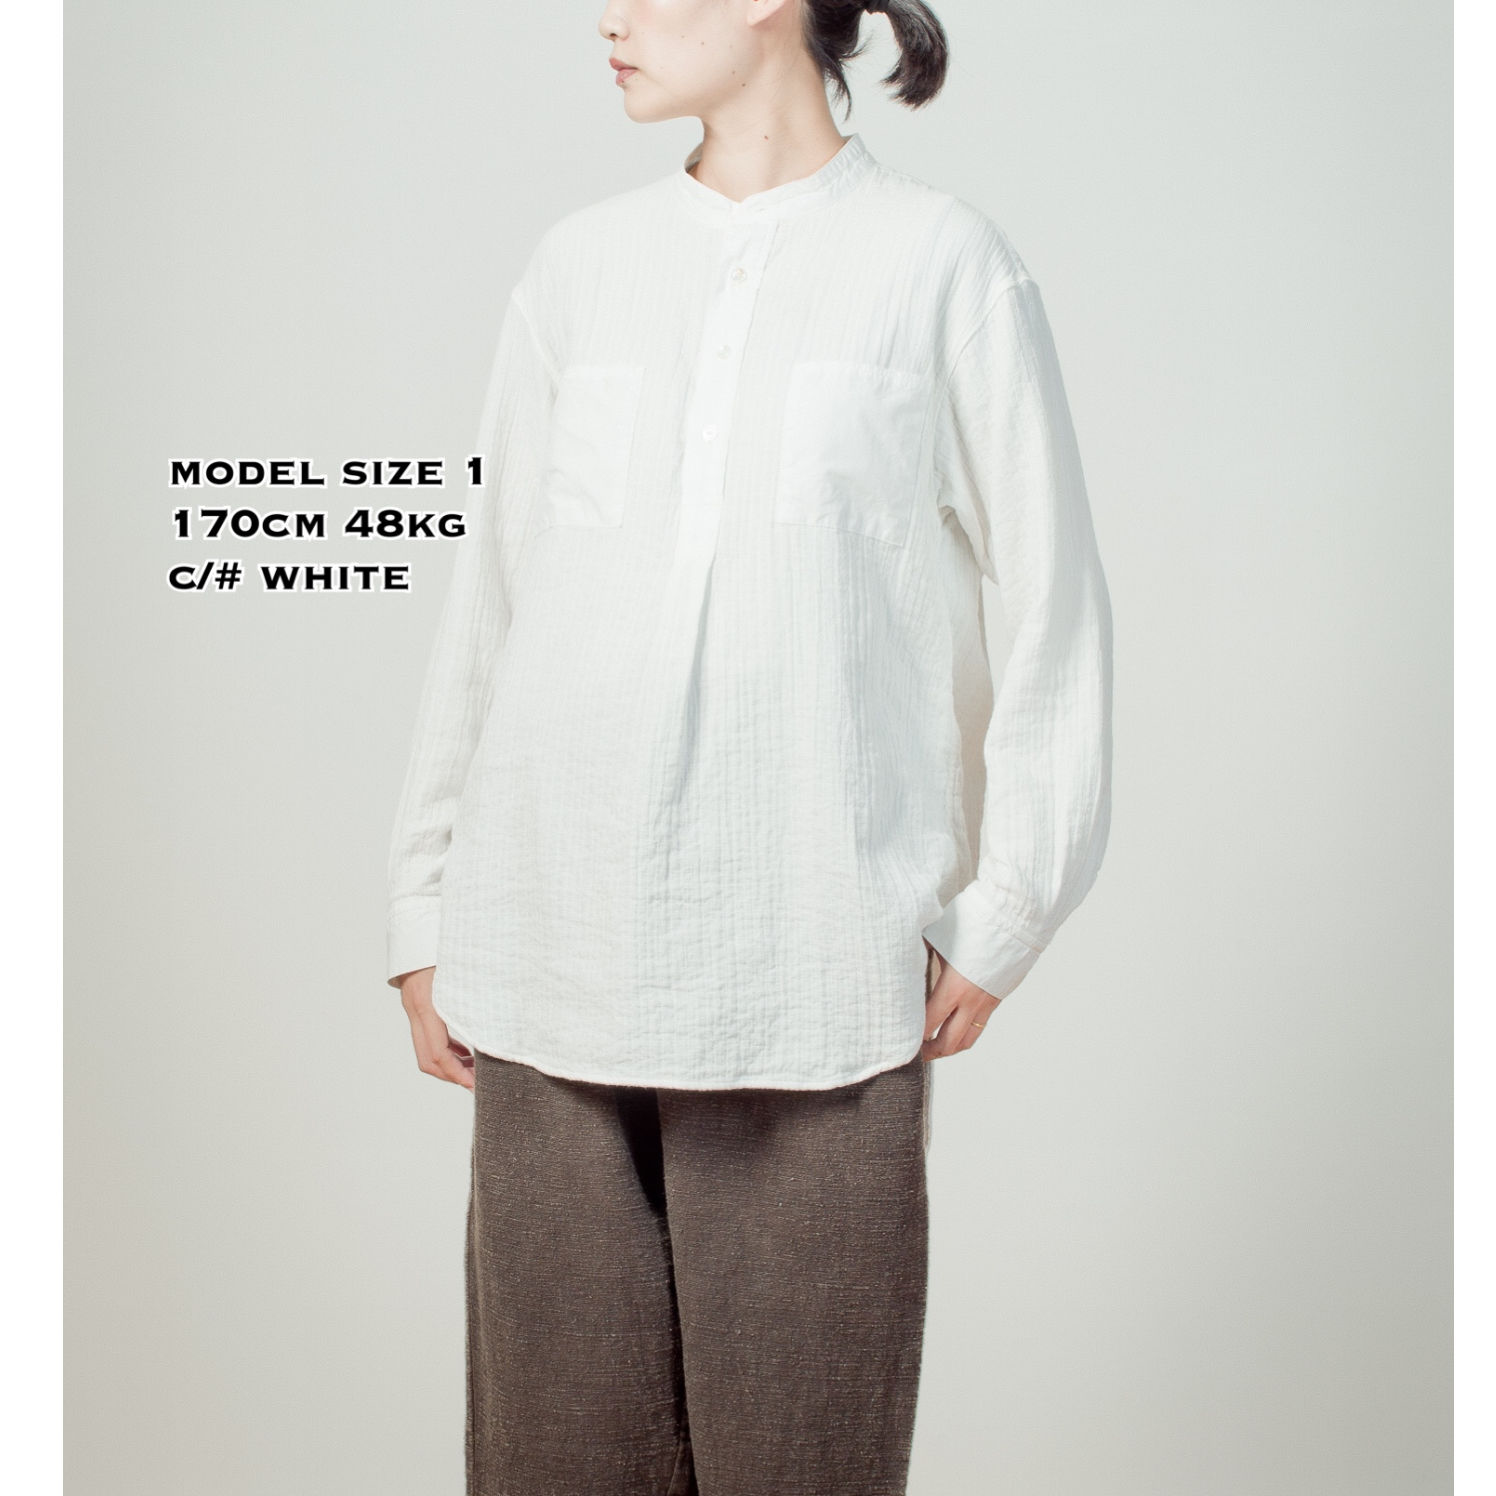 ZEN WHISPERING SEA COTTON SHIRTーWHITE